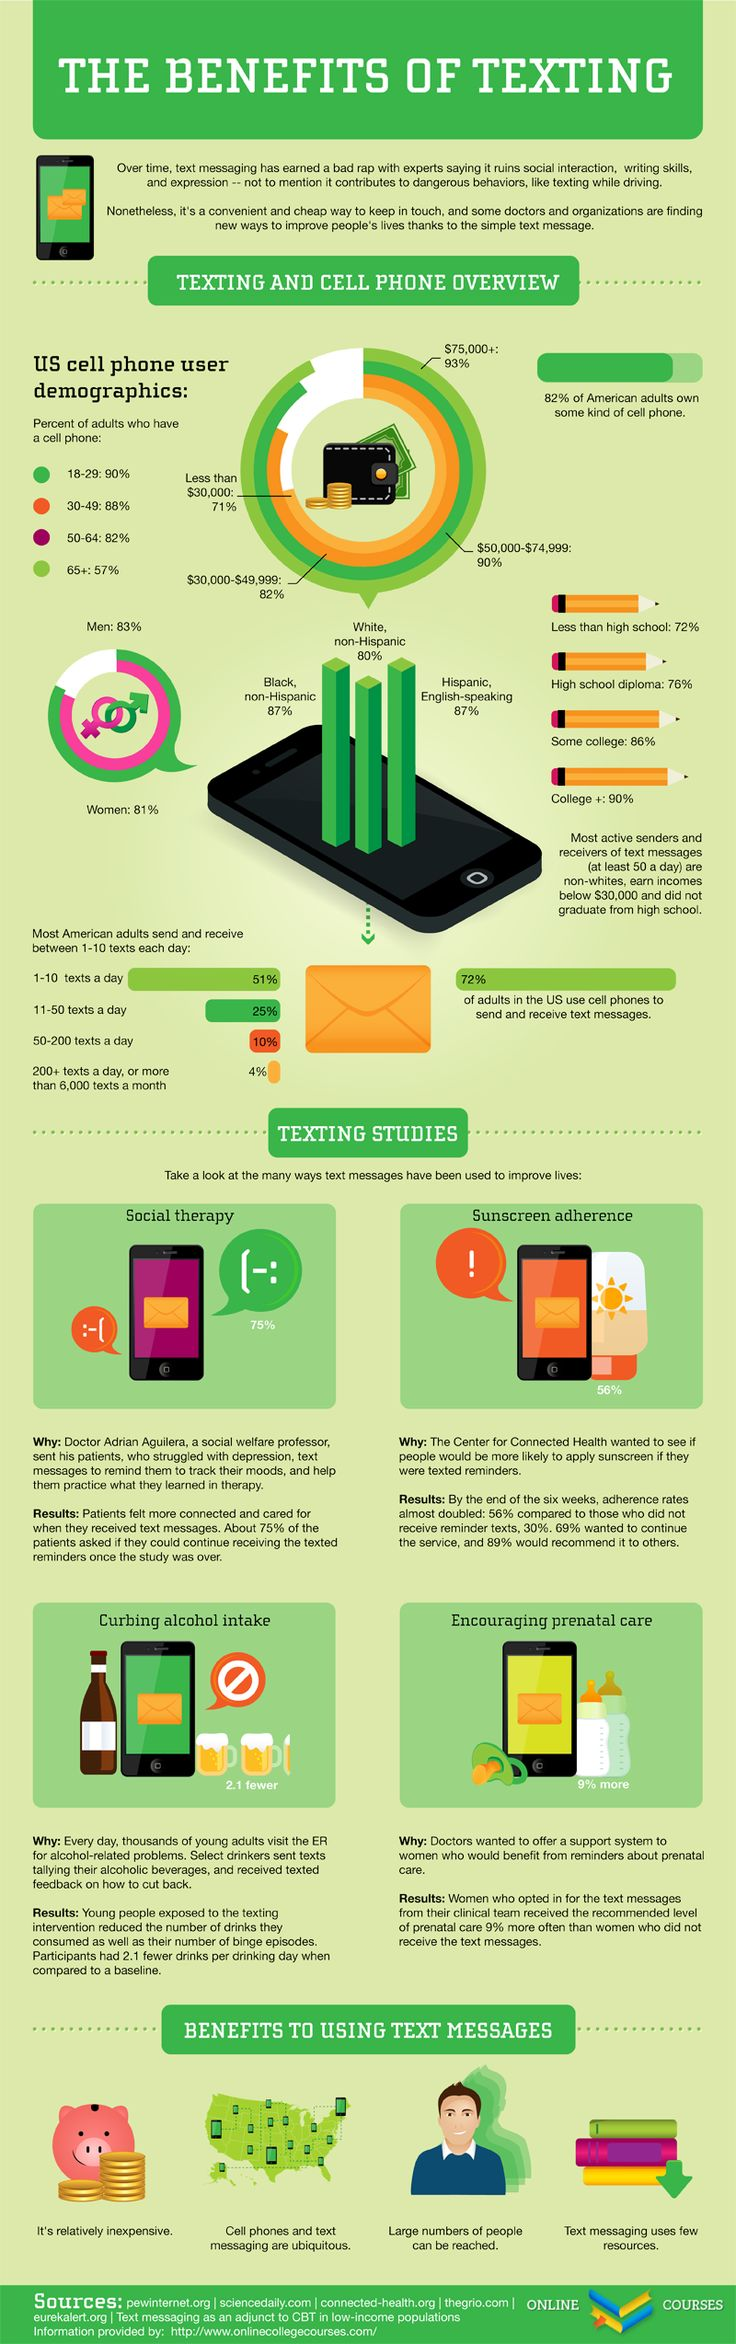 What Are Some Benefits Of Mobile Text Messaging? #infographic